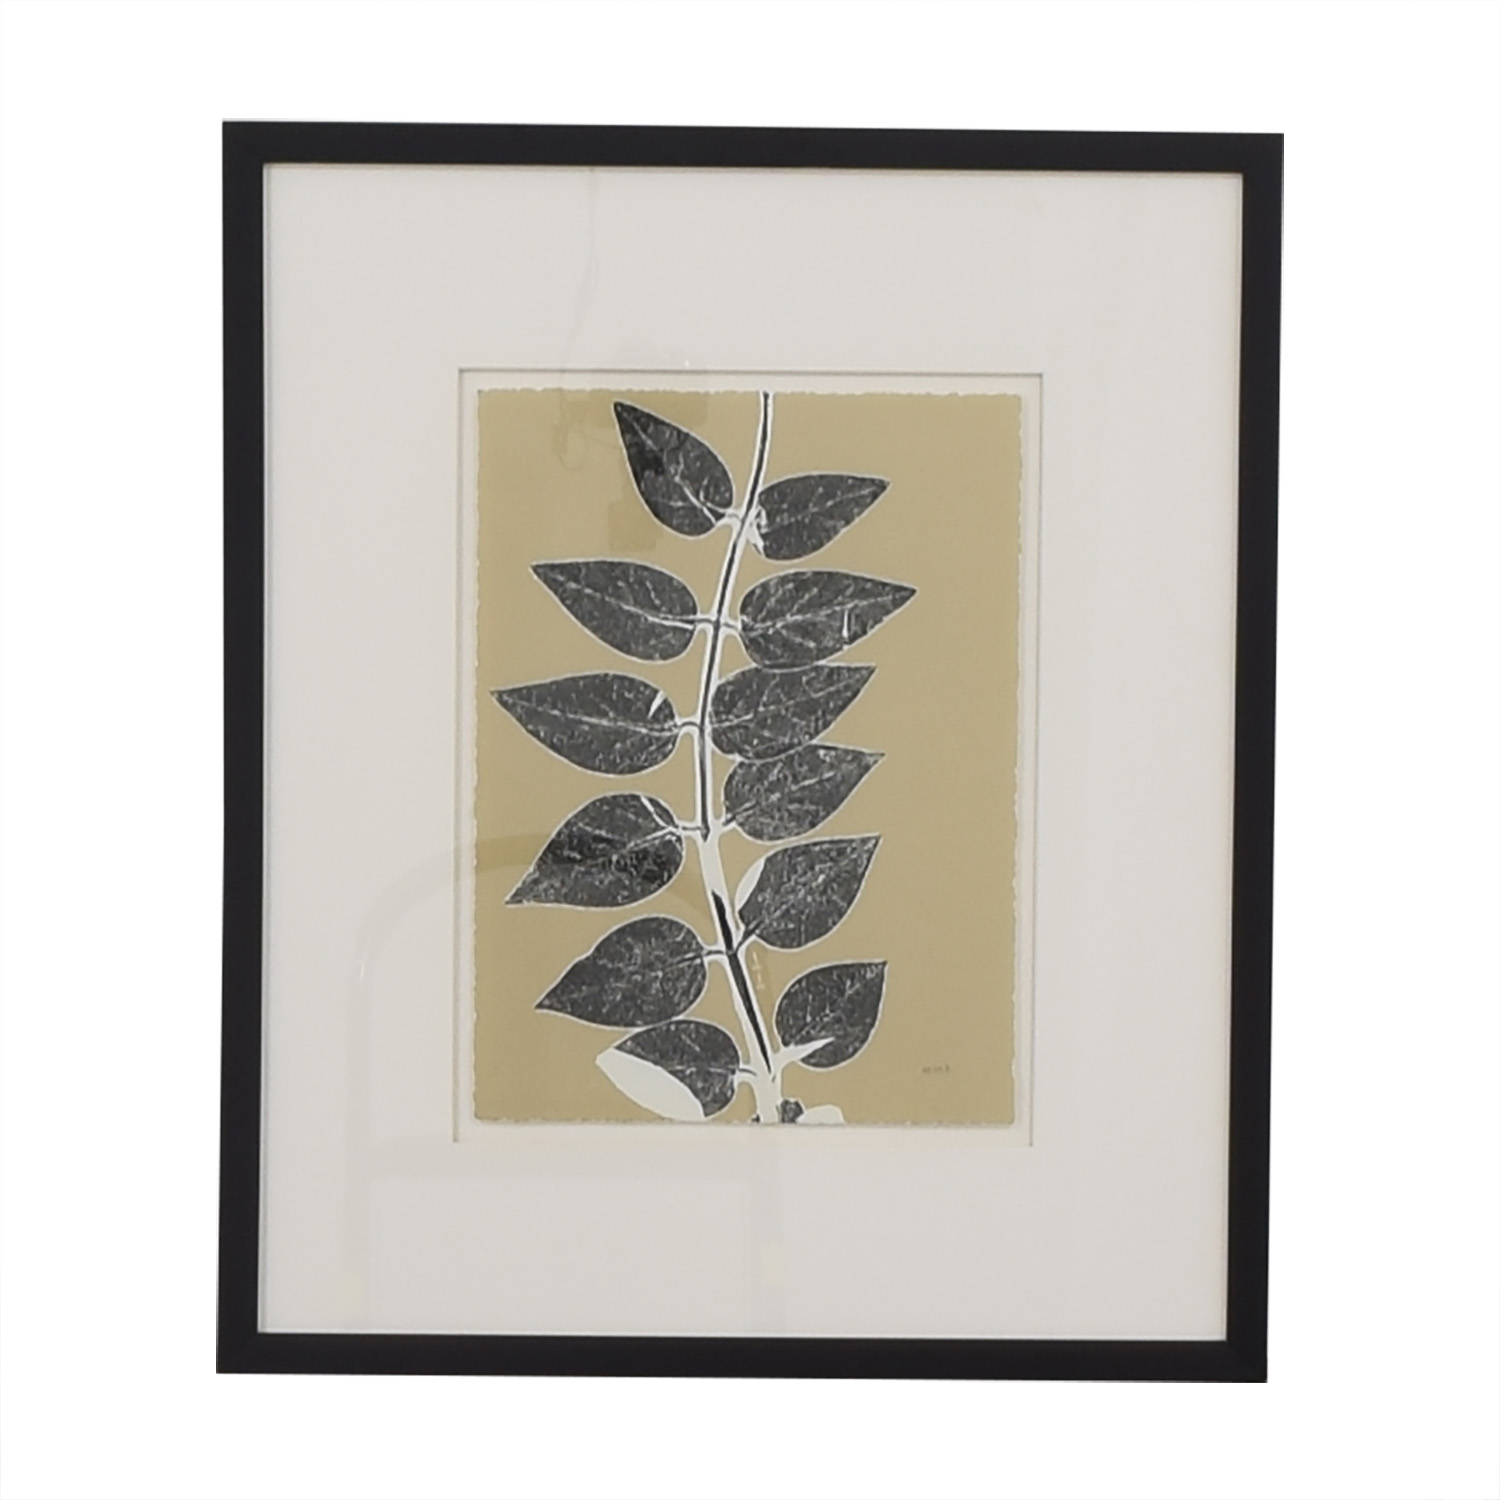 Ethan Allen Ethan Allen Botanical Artwork coupon